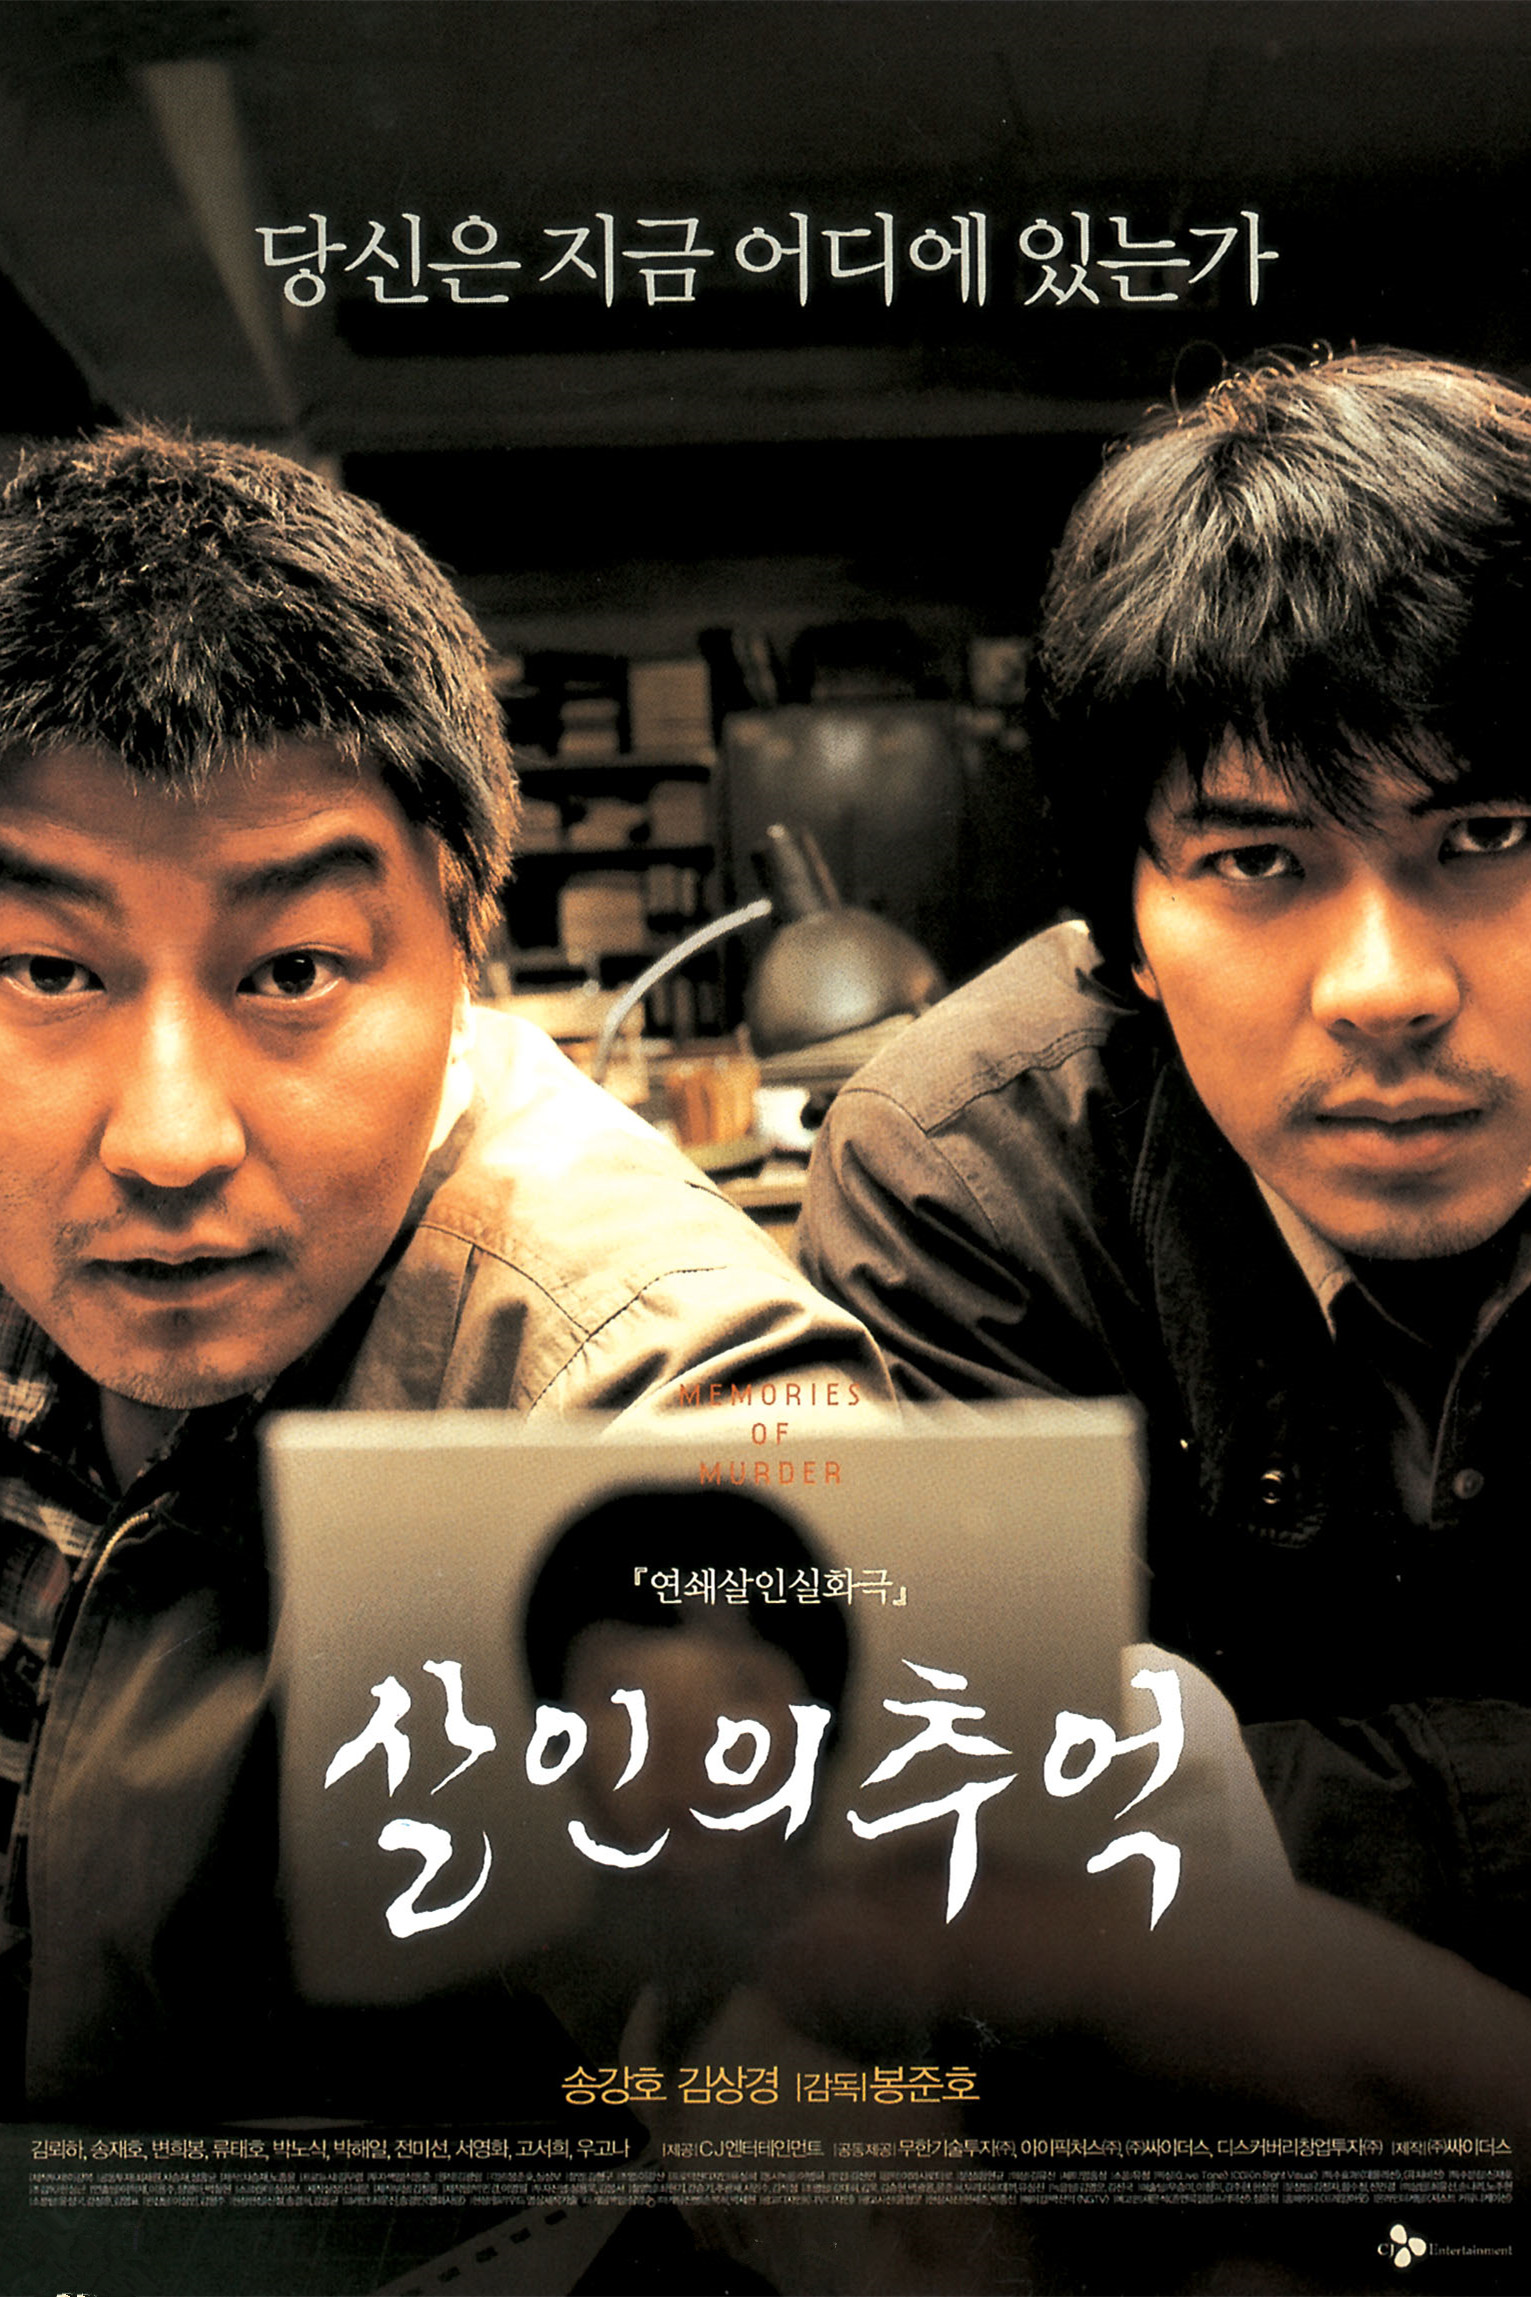 Memories of Murder (2003) - Directed by: Joon-ho BongStarring: Kang-ho Song, Sang-kyung Kim, Roe-ha KimRated: NR (TMM Suggested R for Strong Violence and Disturbing Material)Running Time: 2 h 12 mTMM Score: 4.5 stars out of 5STRENGTHS: Directing, Writing, Characters, Acting, MessageWEAKNESSES: Pacing During Second Act